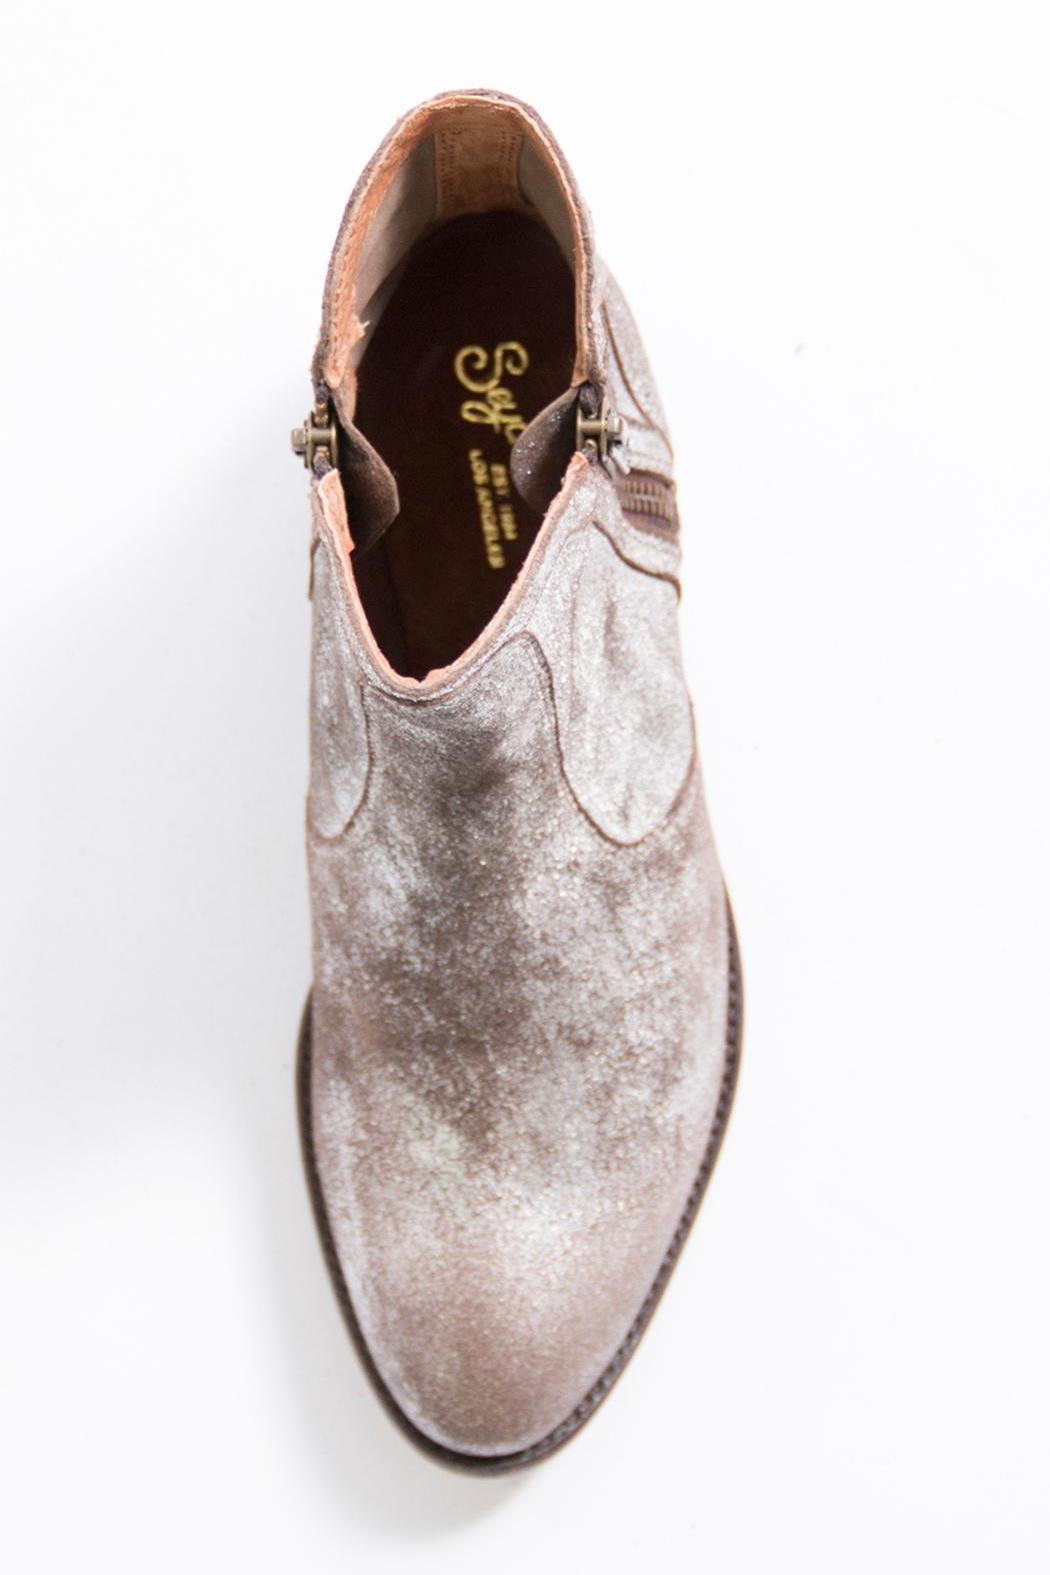 Lucky Penny Shoes For Sale